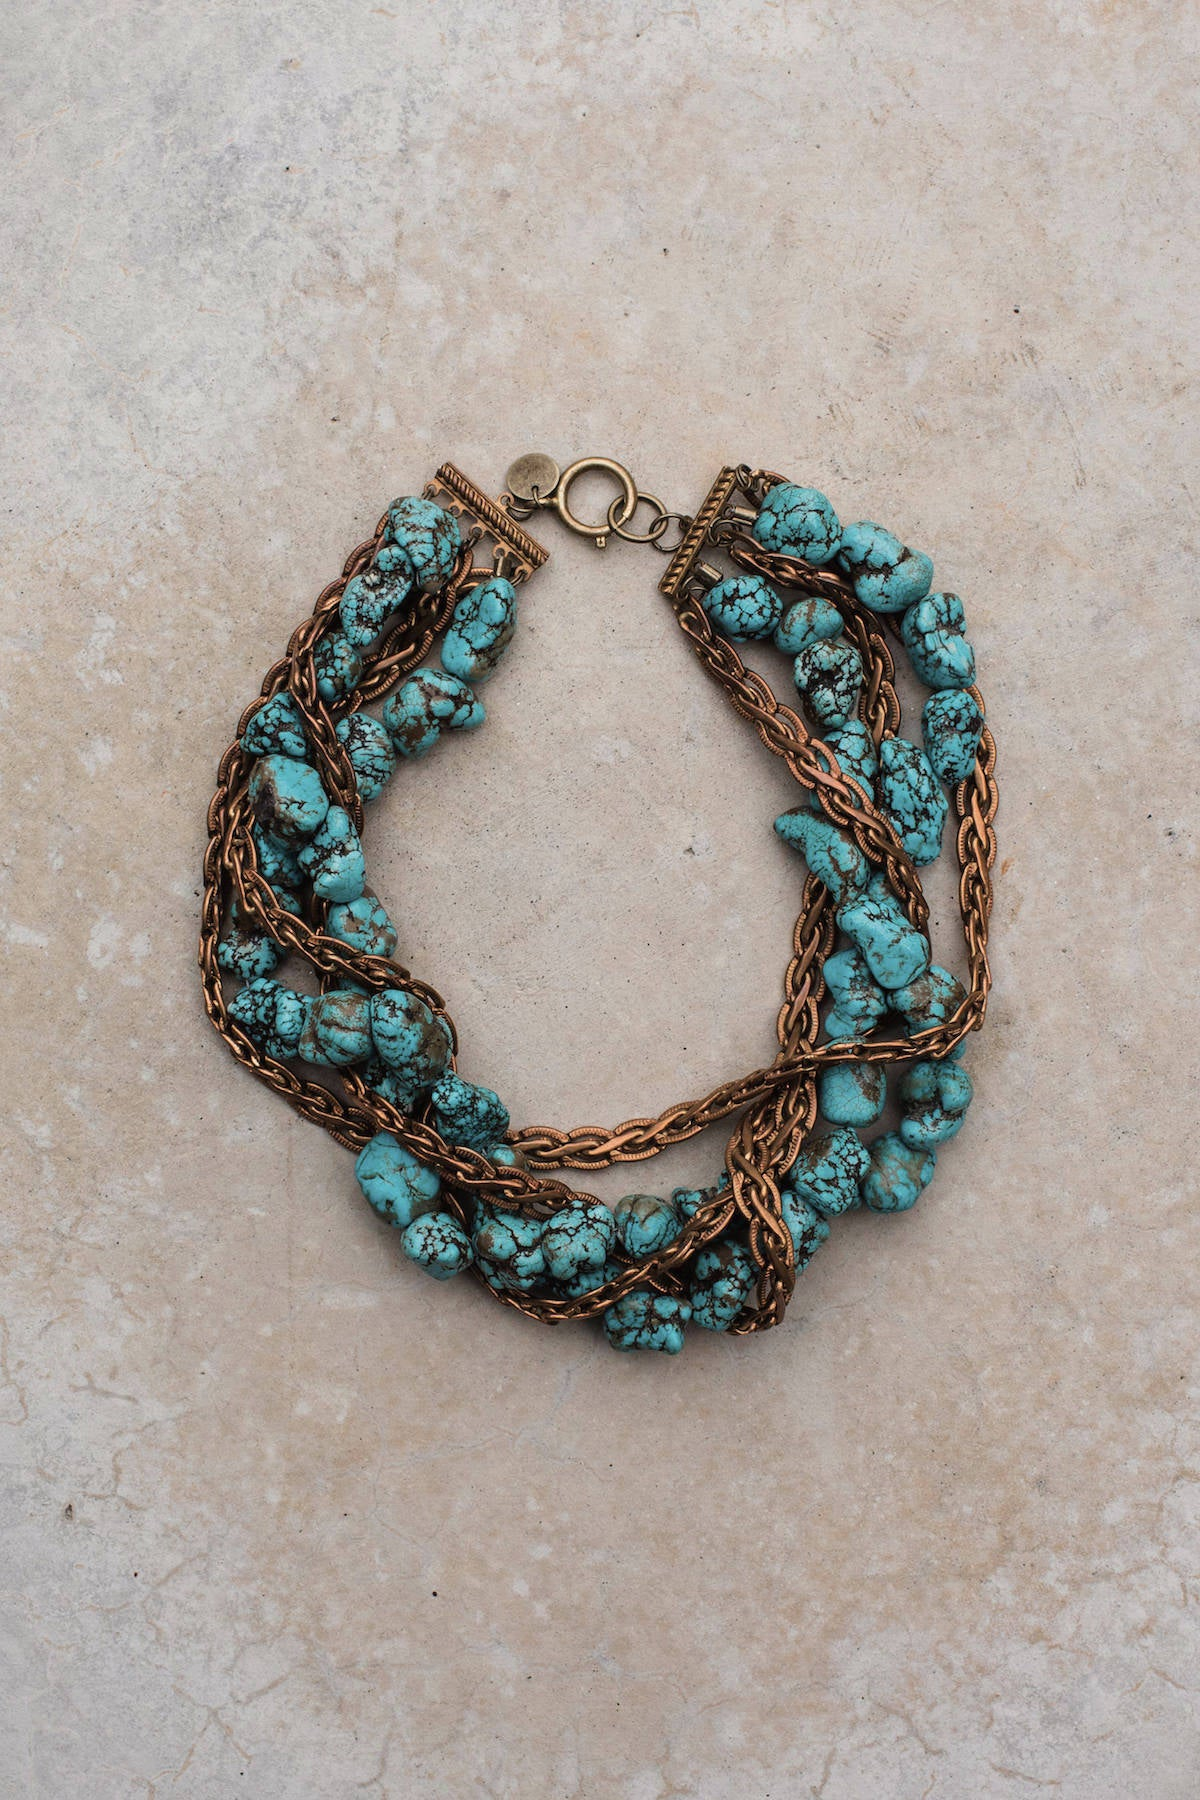 Turquoise Antique Copper Flat Rope Collar Necklace